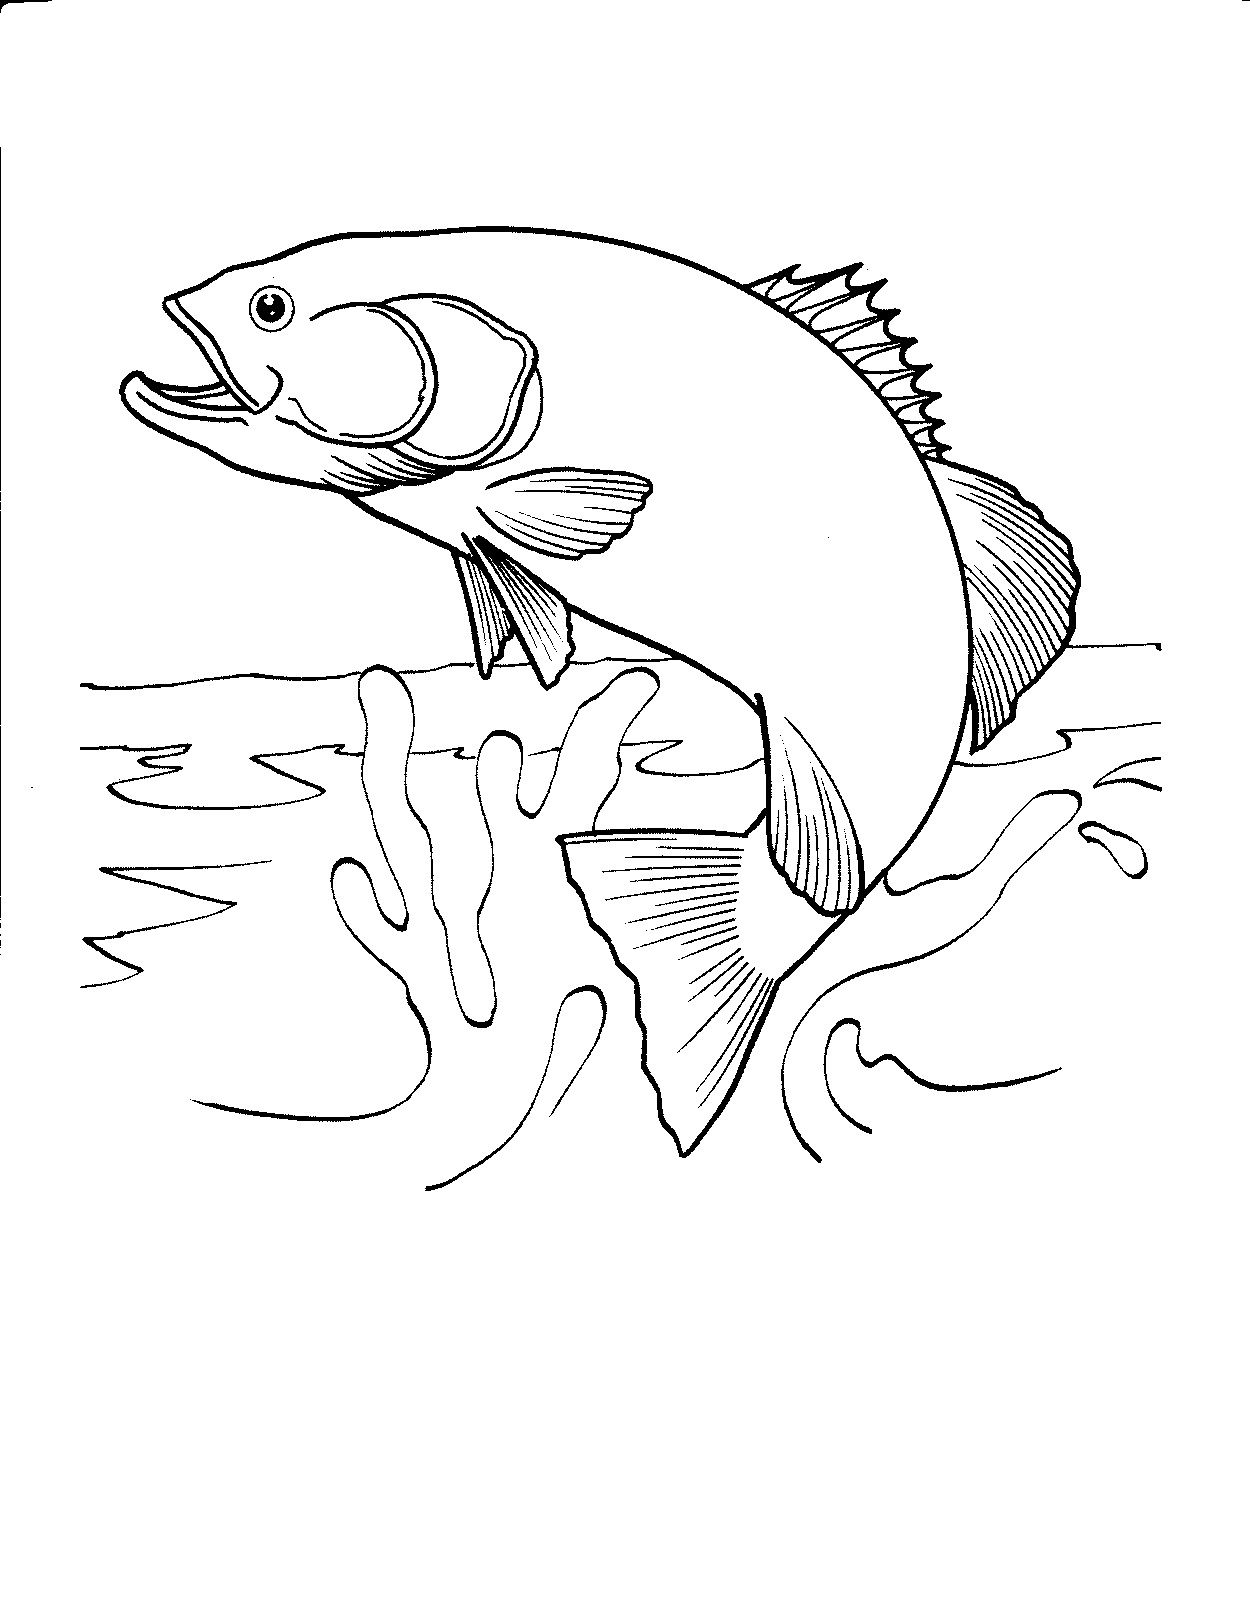 Printable fish coloring pages free printable fish for Adult fish coloring pages